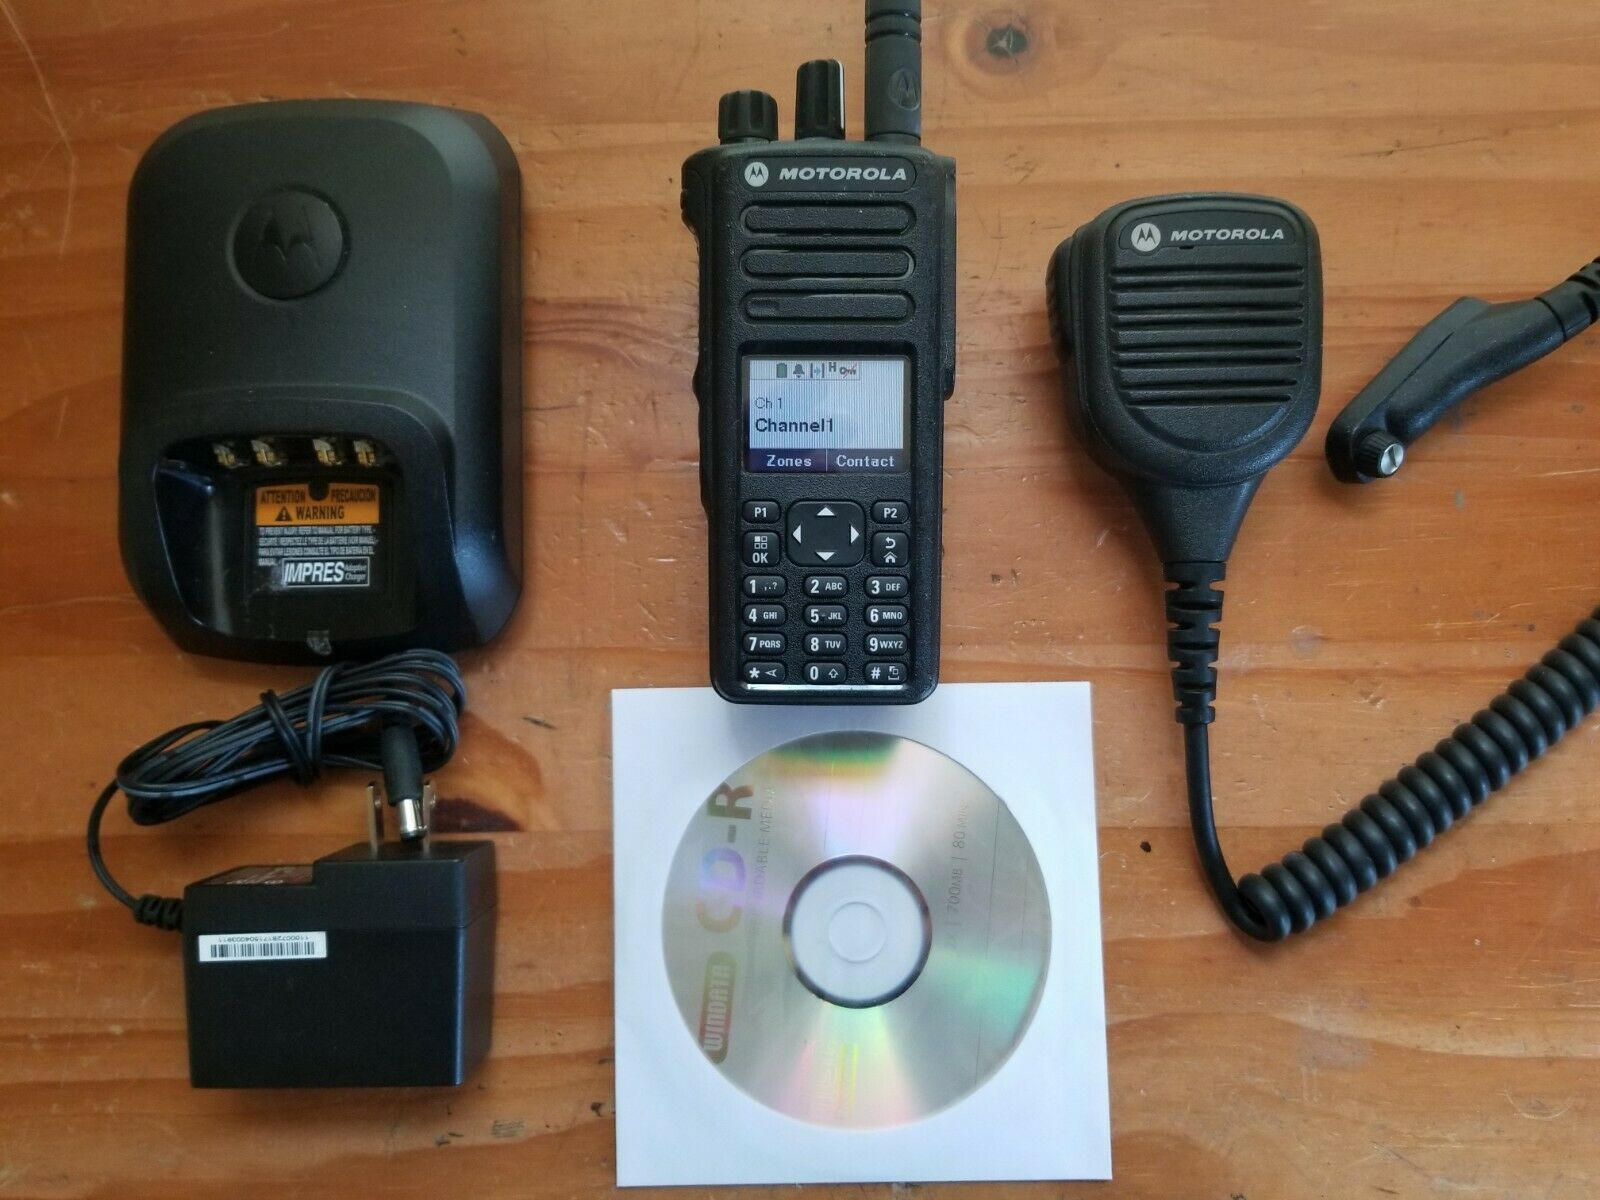 MOTOROLA XPR 7550E UHF 403-512 MHz  WITH PROGRAMMING. Available Now for 515.00